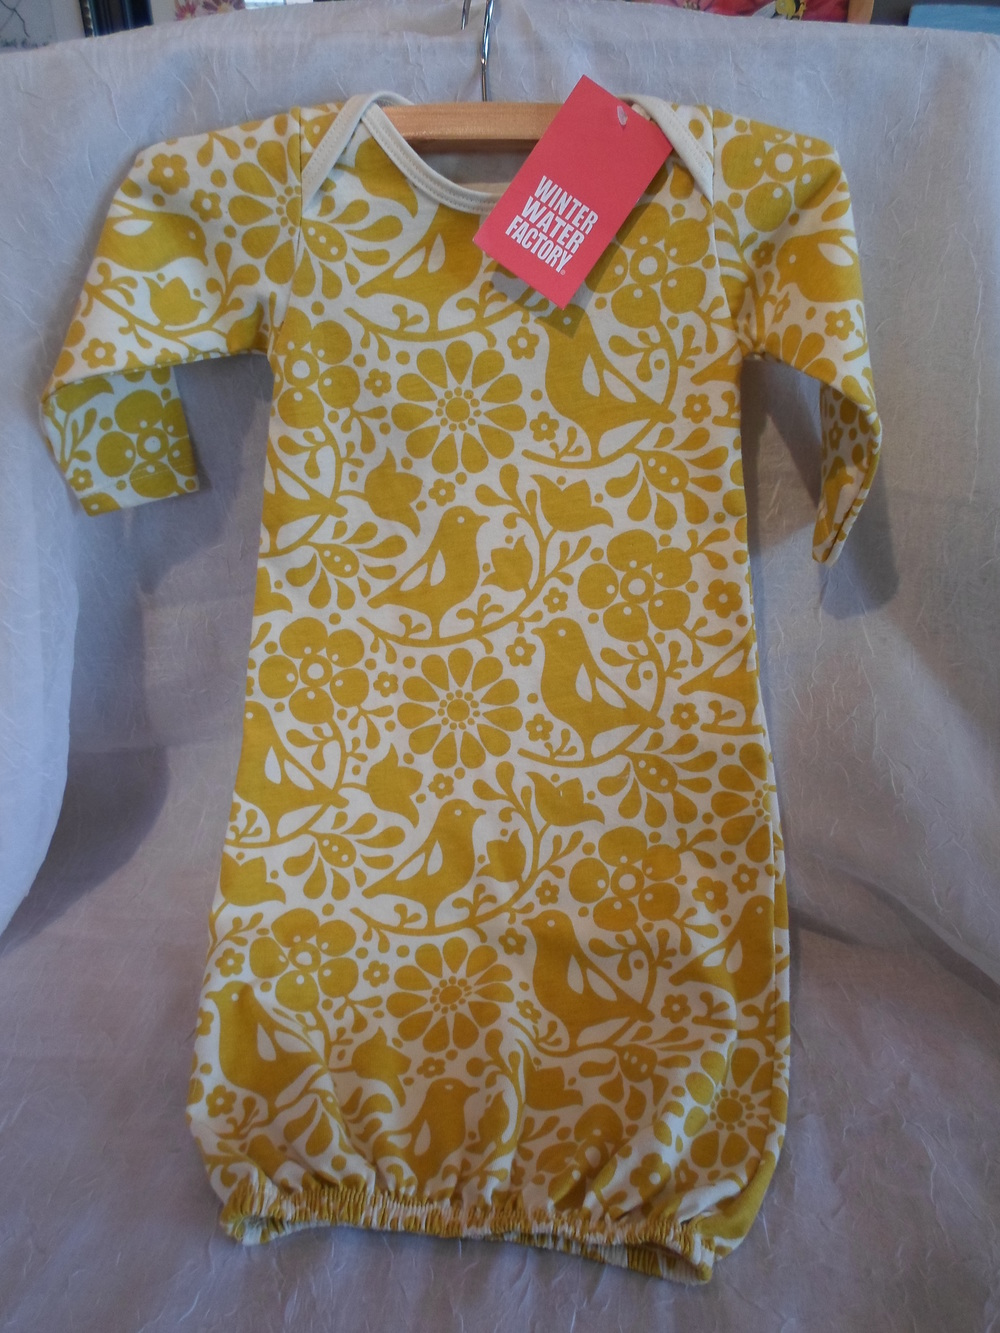 Winter Water Factory Organic Baby Gown in Yellow Birds size 3m $36.95 Wants 1